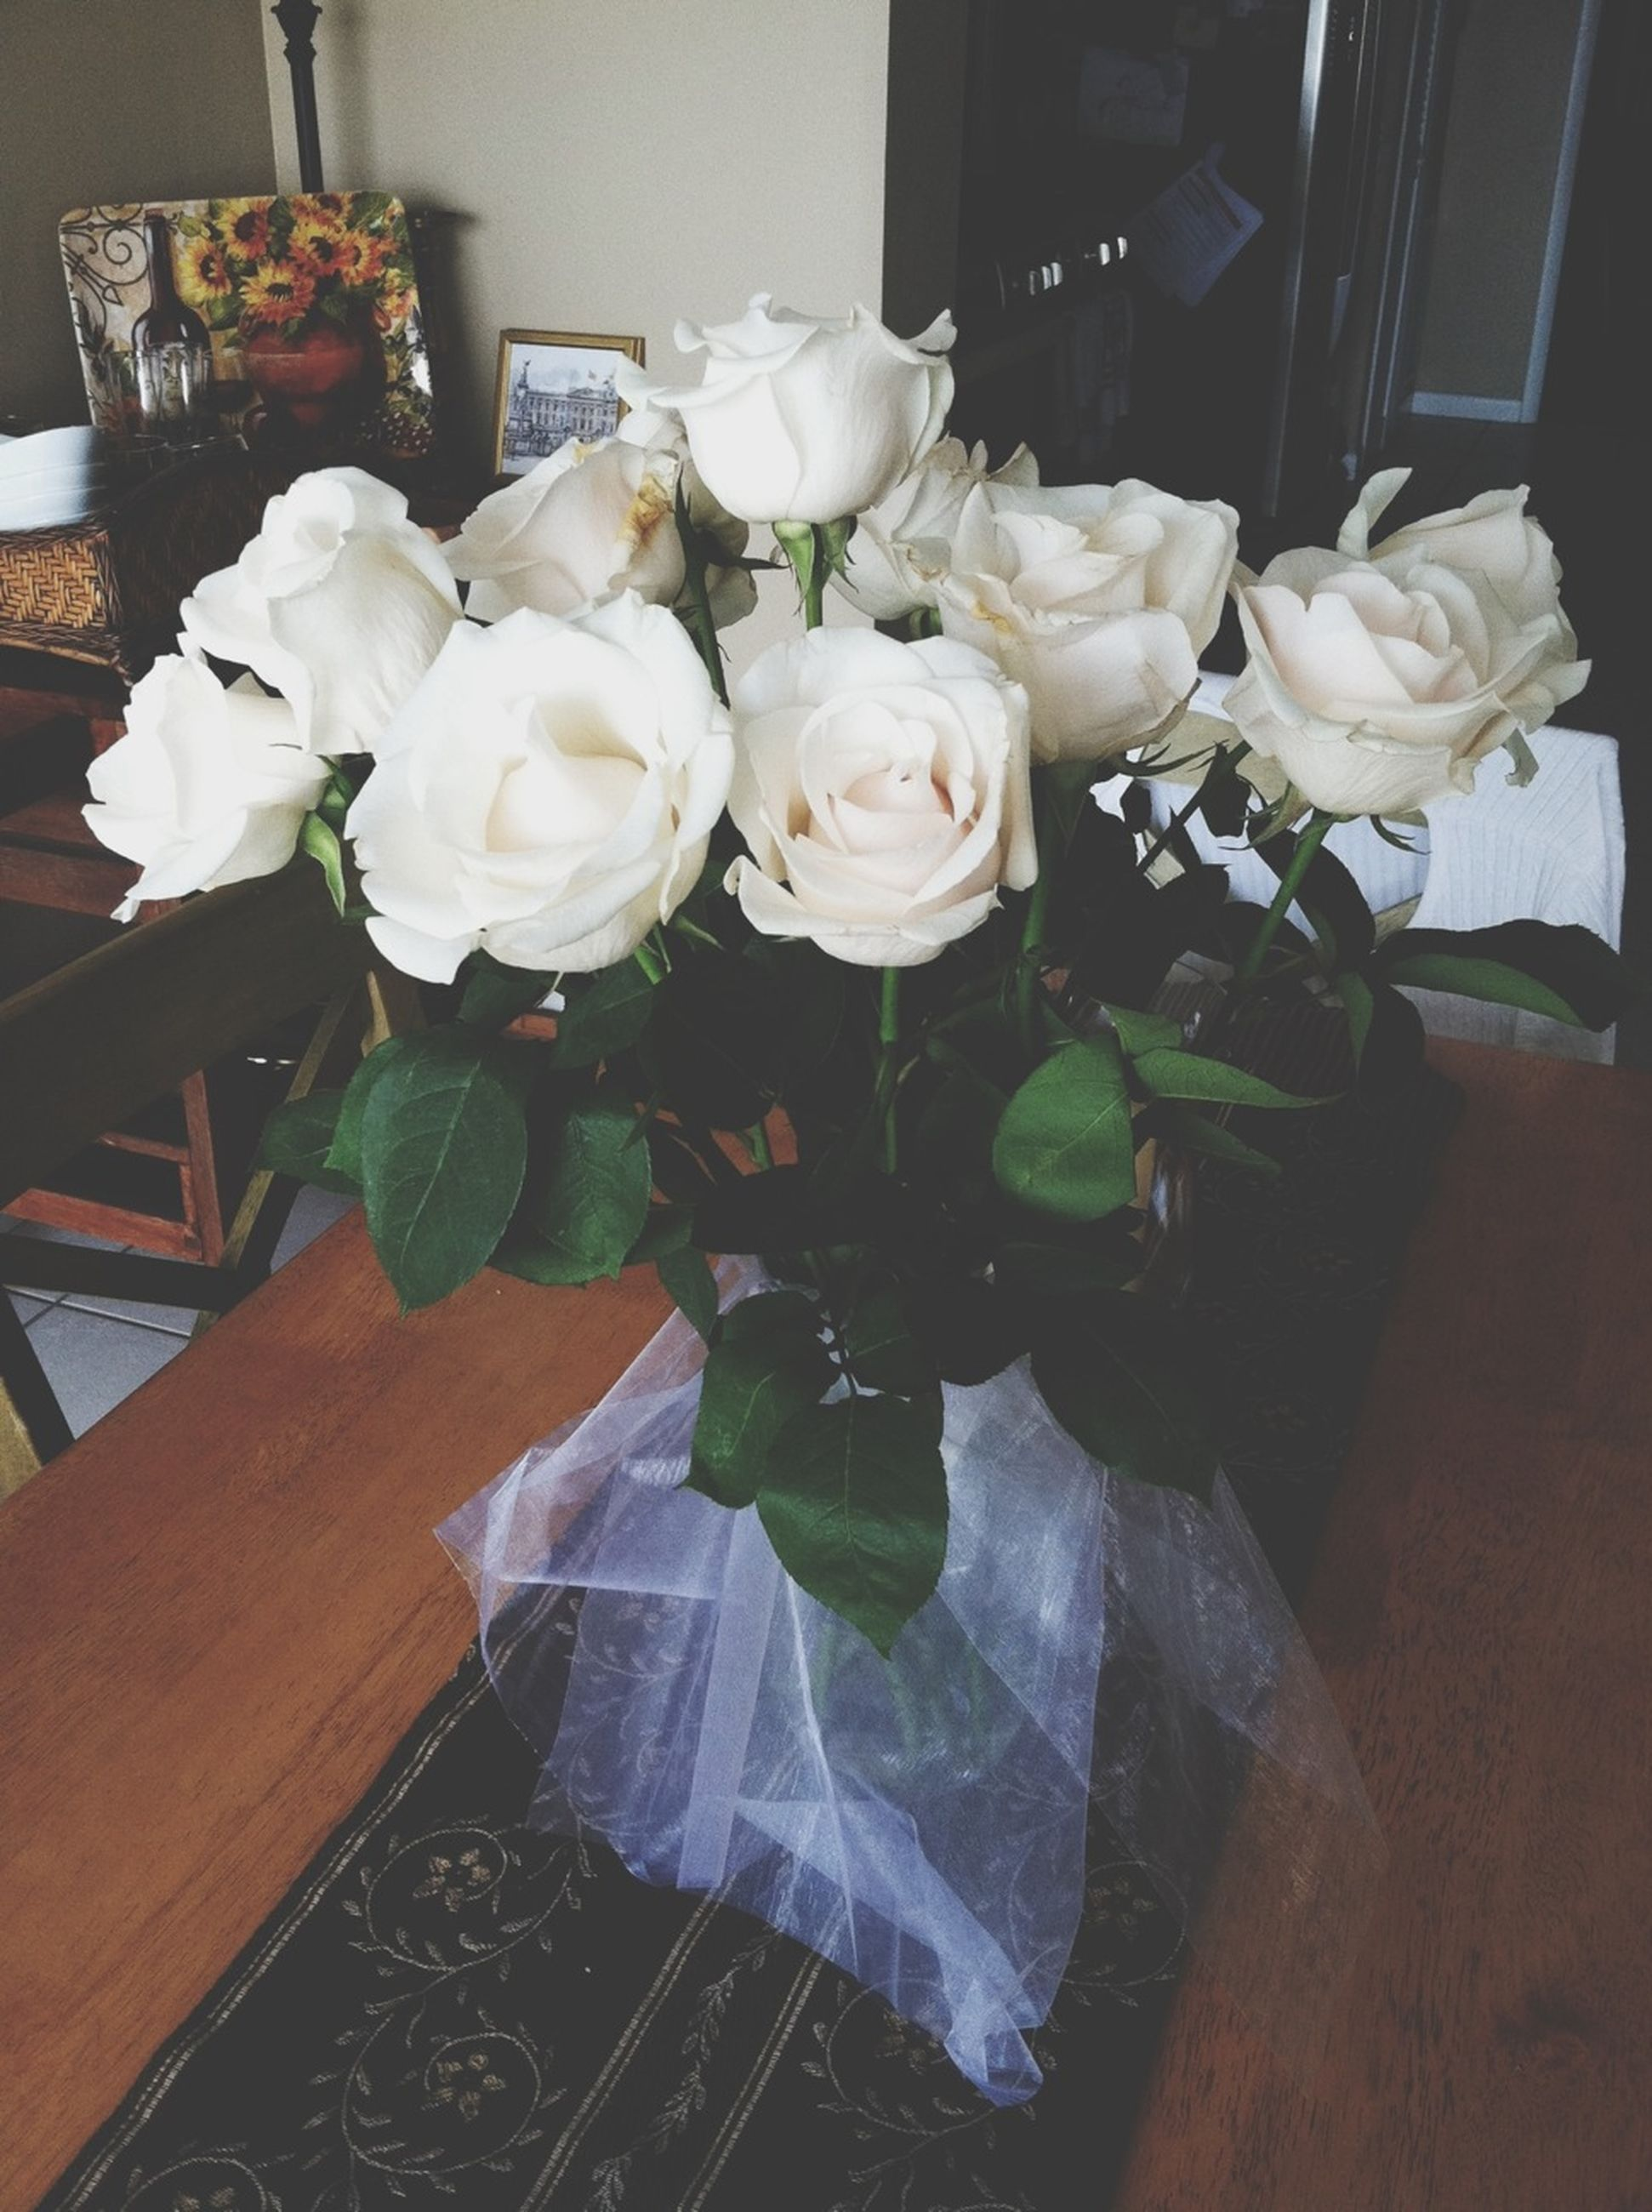 flower, indoors, freshness, fragility, vase, petal, table, flower head, rose - flower, white color, flower arrangement, bunch of flowers, beauty in nature, bouquet, home interior, growth, nature, decoration, high angle view, plant